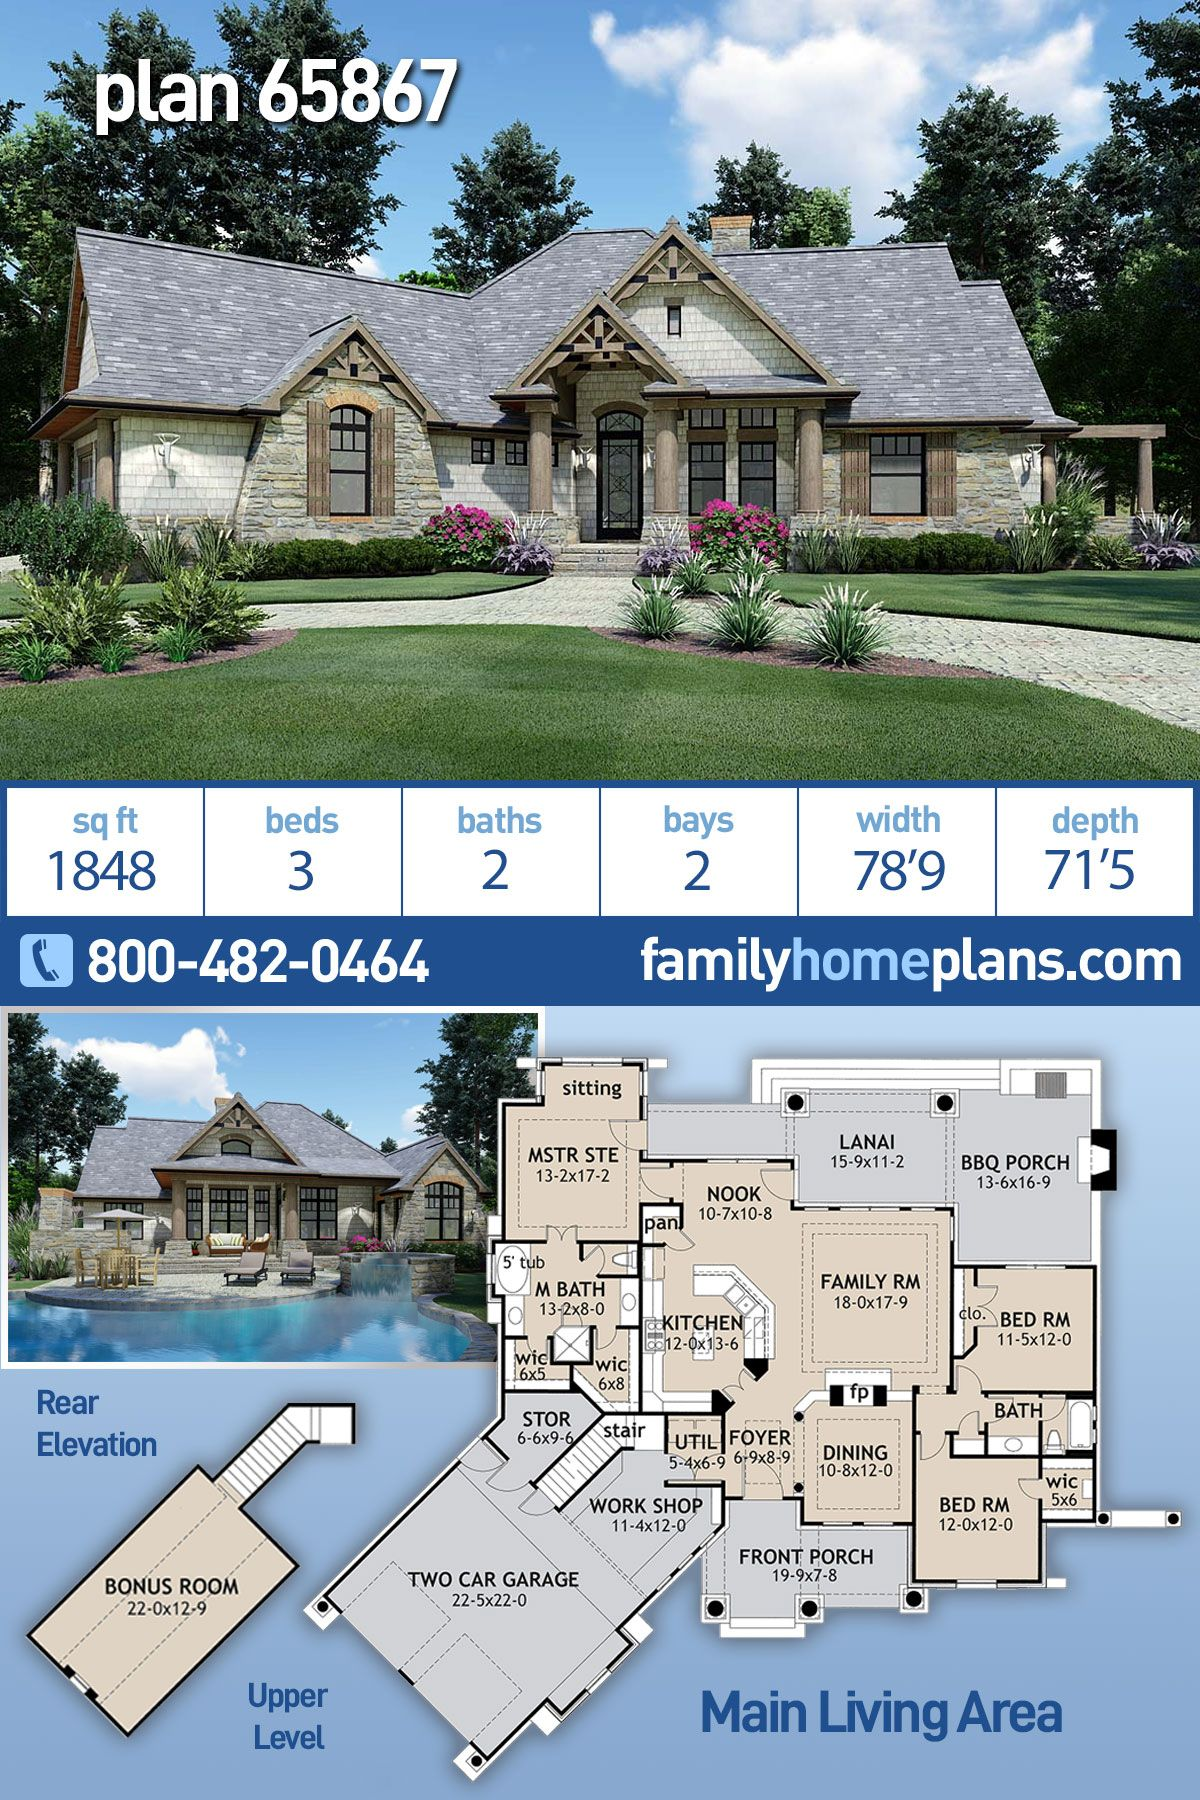 Tuscan Style House Plan 65867 With 3 Bed 2 Bath 2 Car Garage Tuscan House Plans House Plans Tuscan House